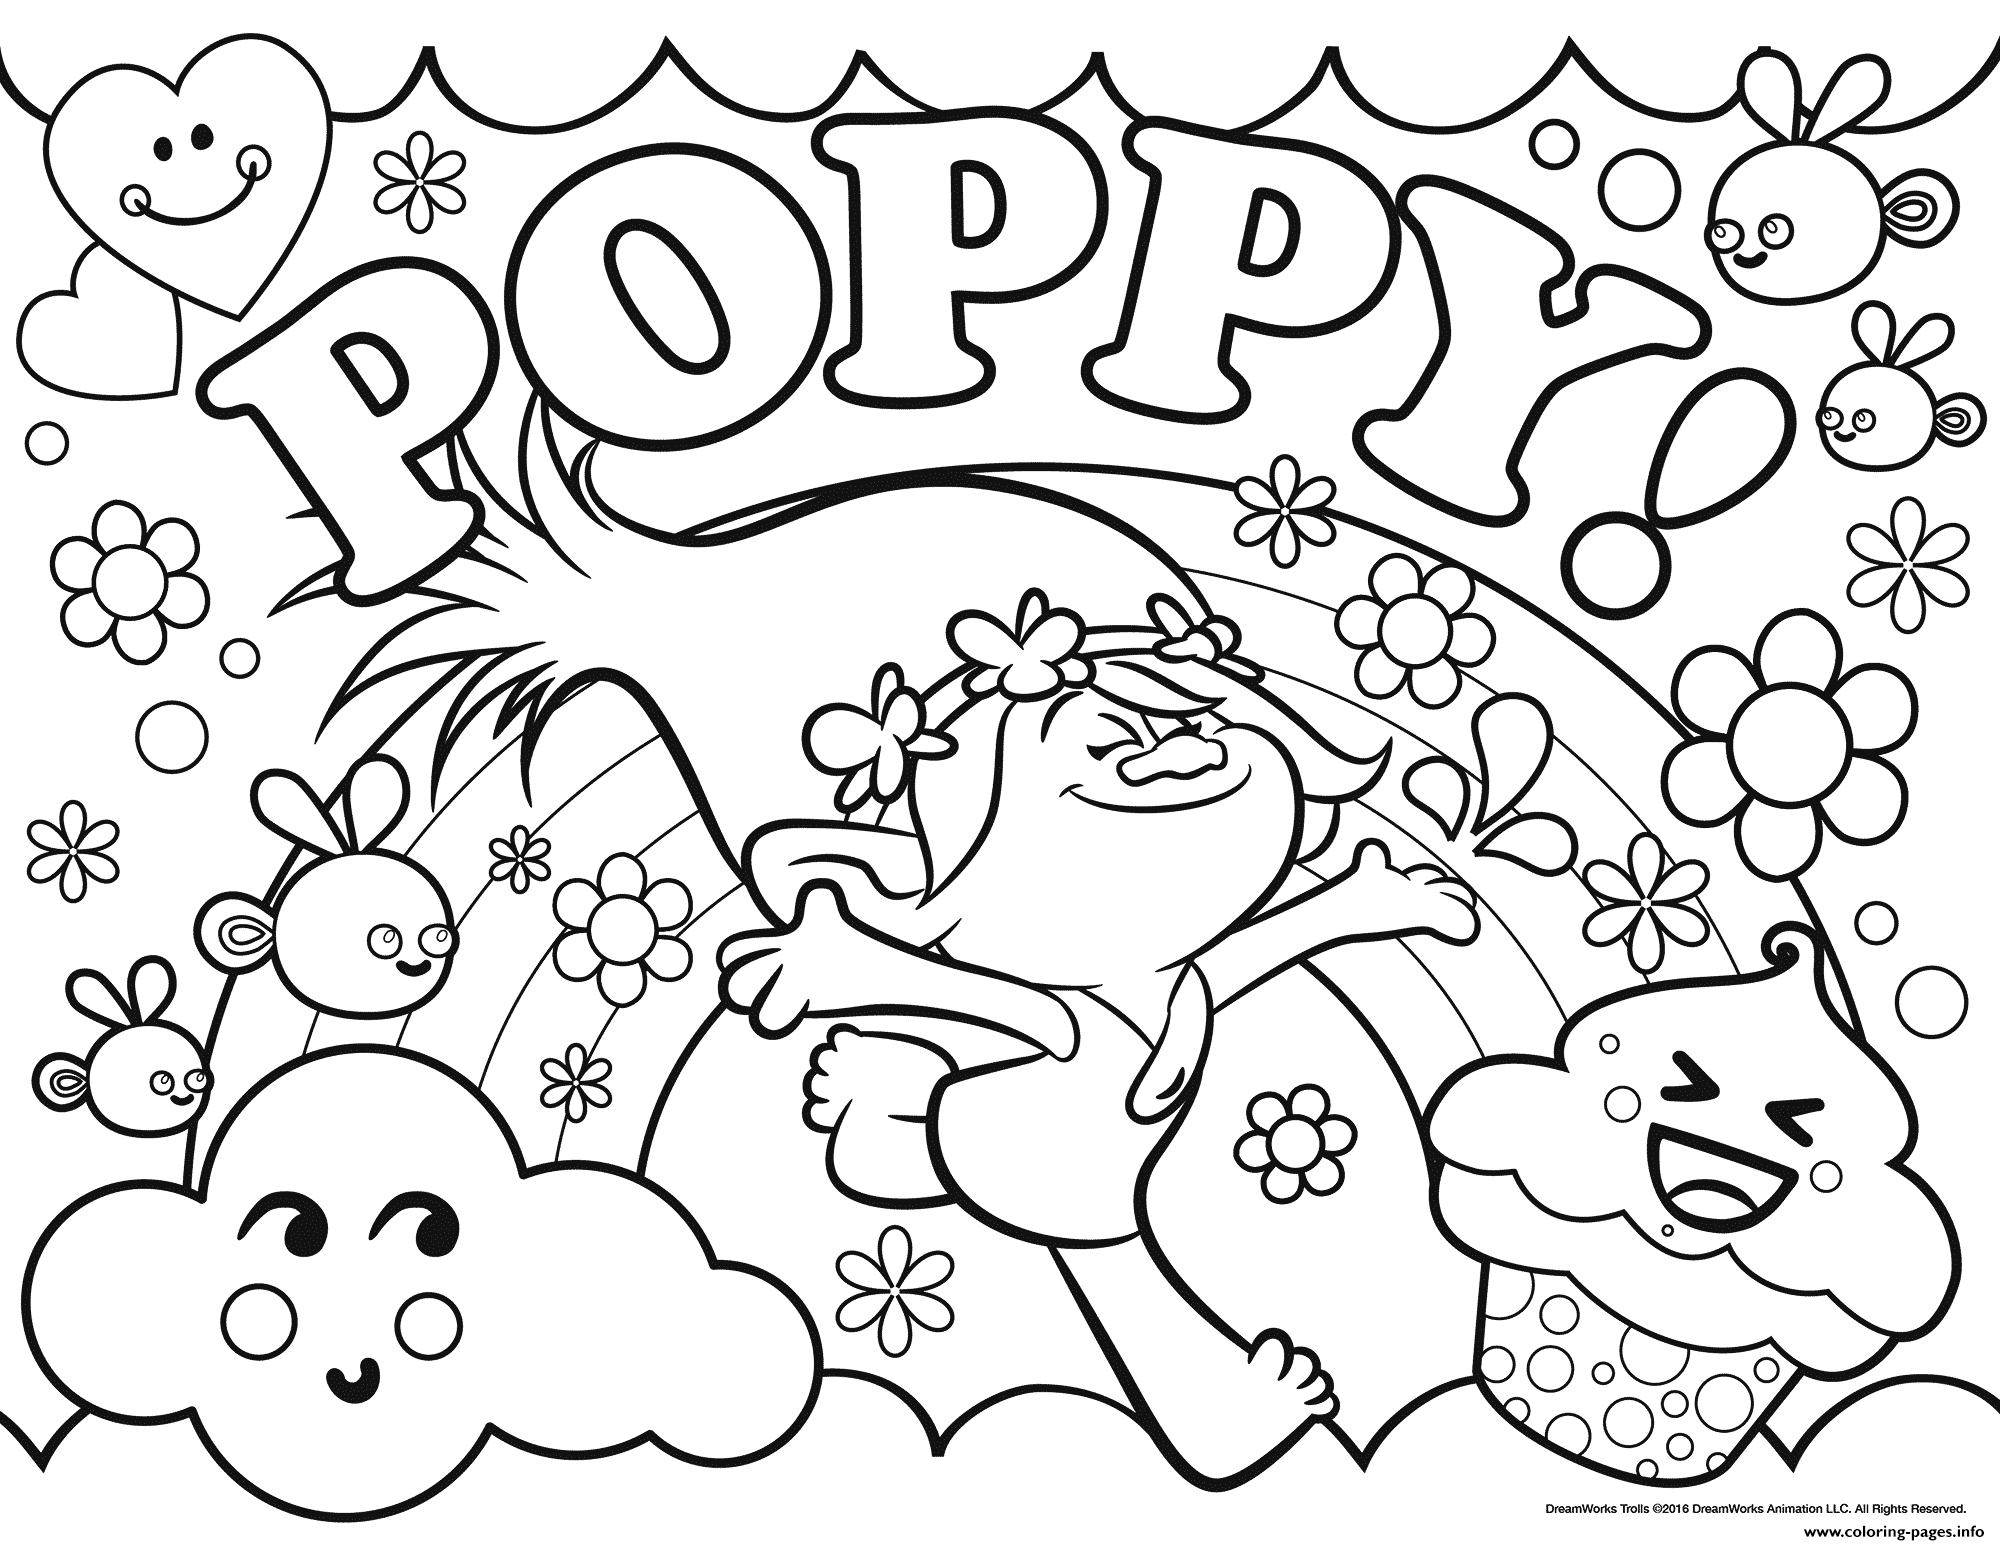 Coloring Pages : Trolls Poppy Coloring Pagestable For Kids Branch - Free Printable Troll Coloring Pages